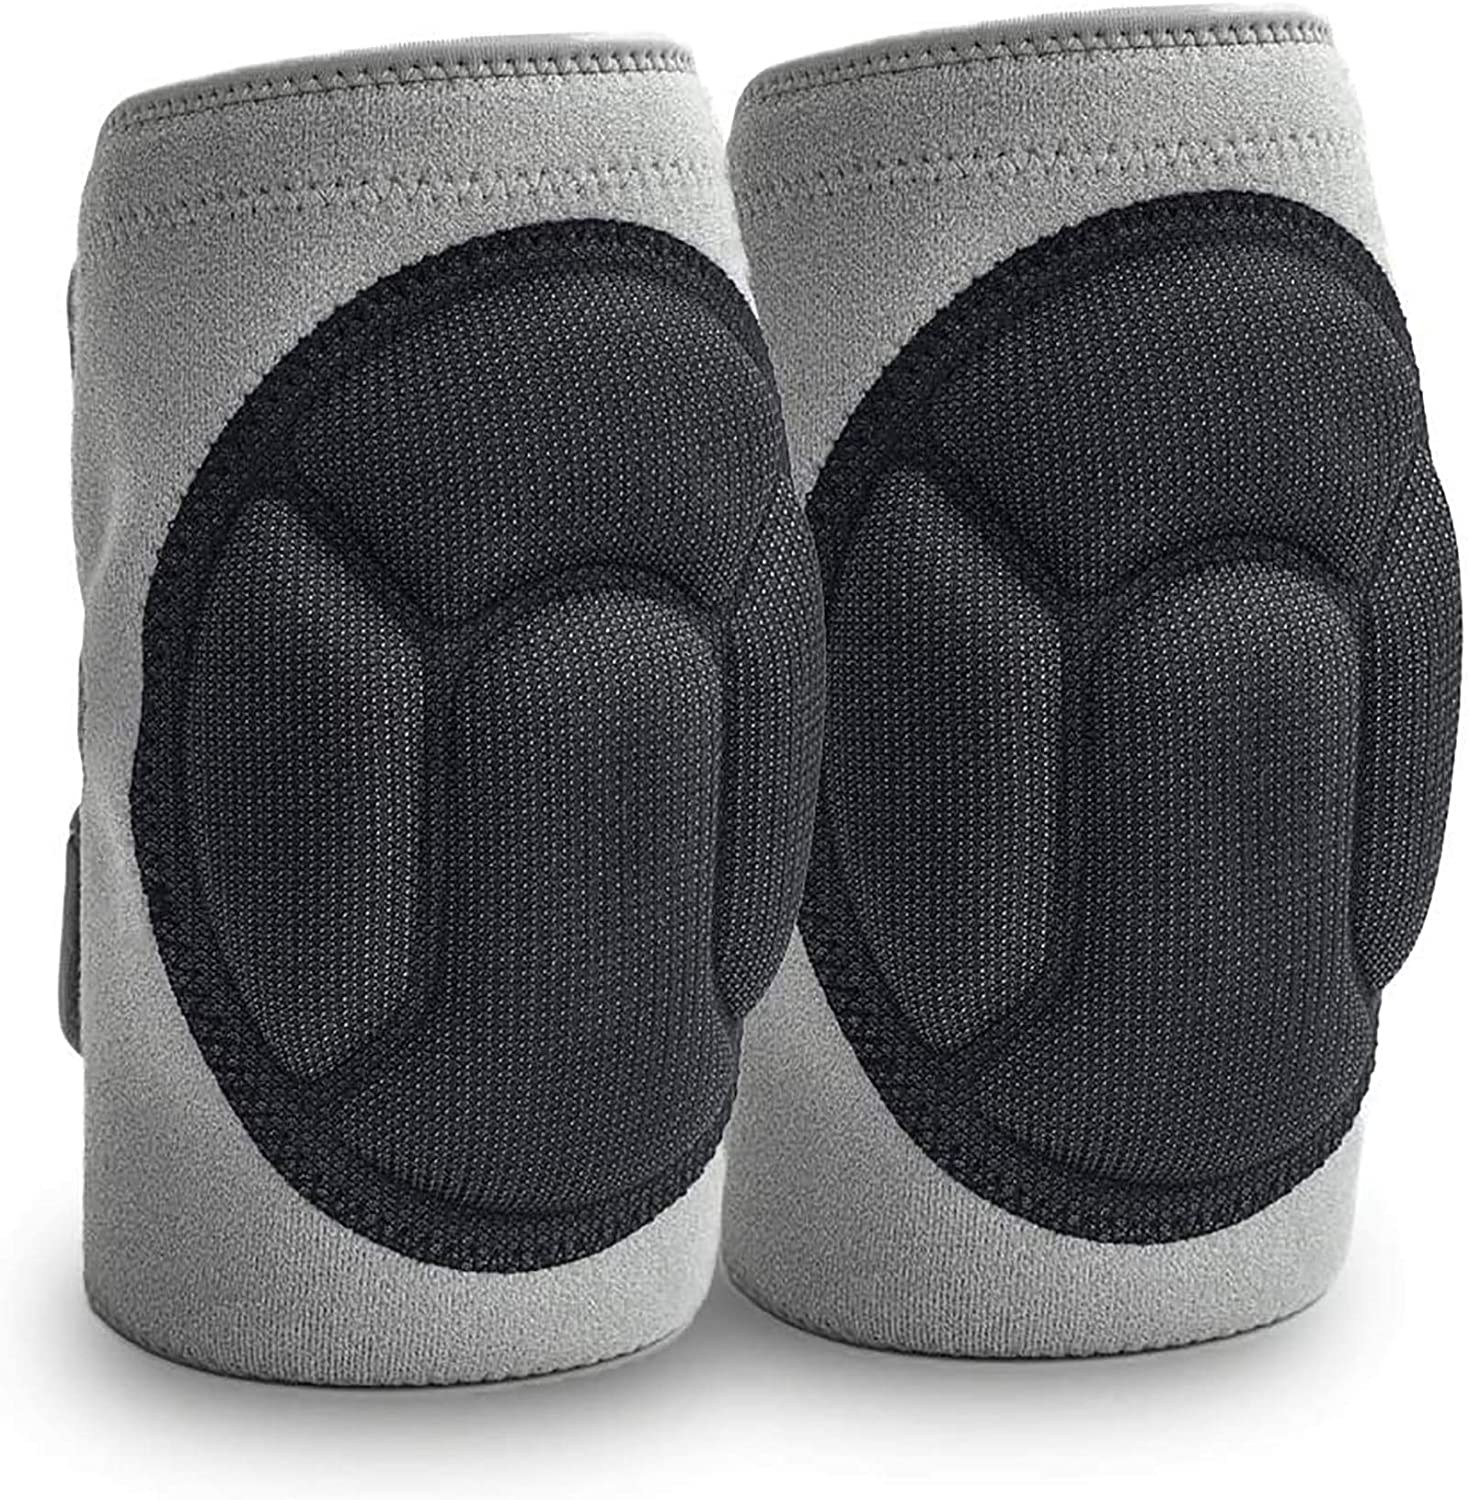 JYSW Knee Pads Gardening & Home, Knee Protectors Protective Cushion with Lightweight EVA Foam Cushion, Soft Inner Liner, Easy Fit with Adjustable Straps for Cleaning Work Scrubbing Floors Pruning